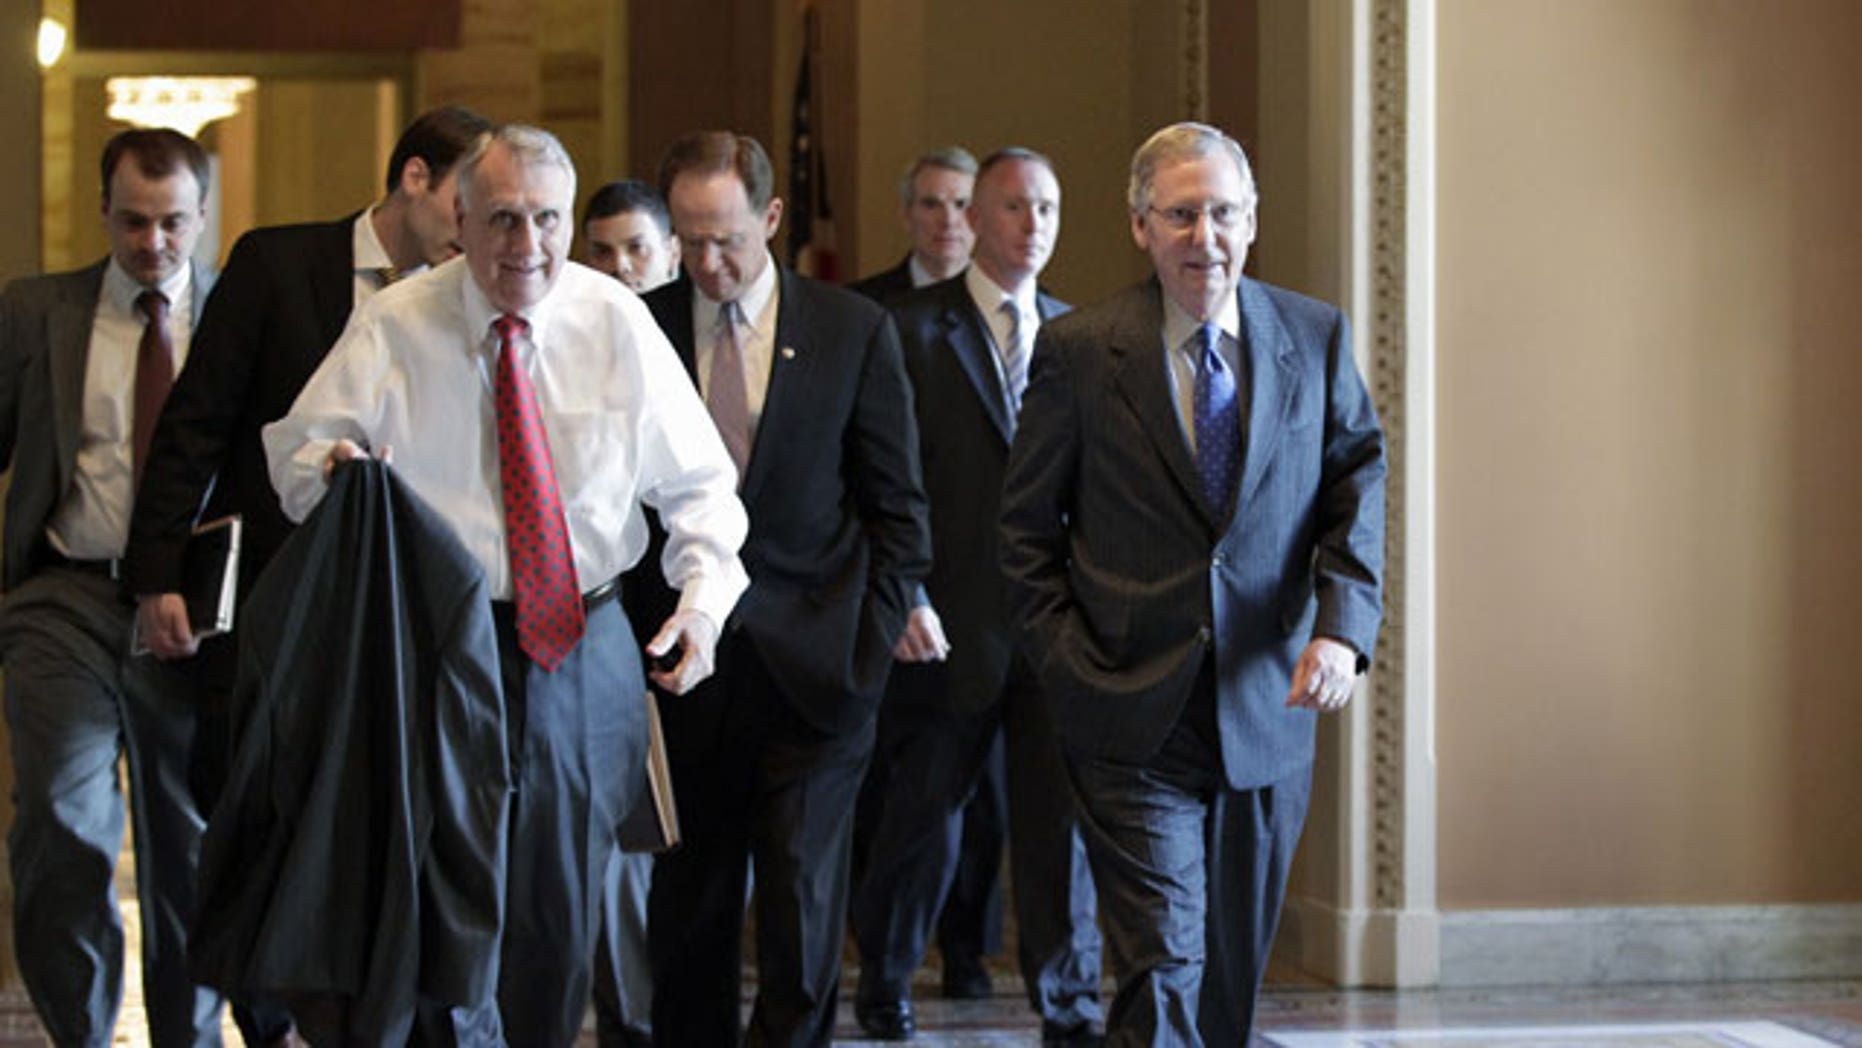 November 3, 2011: Senate Minority Leader Mitch McConnell of Ky., right, walks to the floor of the Senate with Senate Minority Whip Jon Kyl of Ariz., left, Sen. Patrick Toomey, R-Pa., center, and others, on Capitol Hill in Washington.